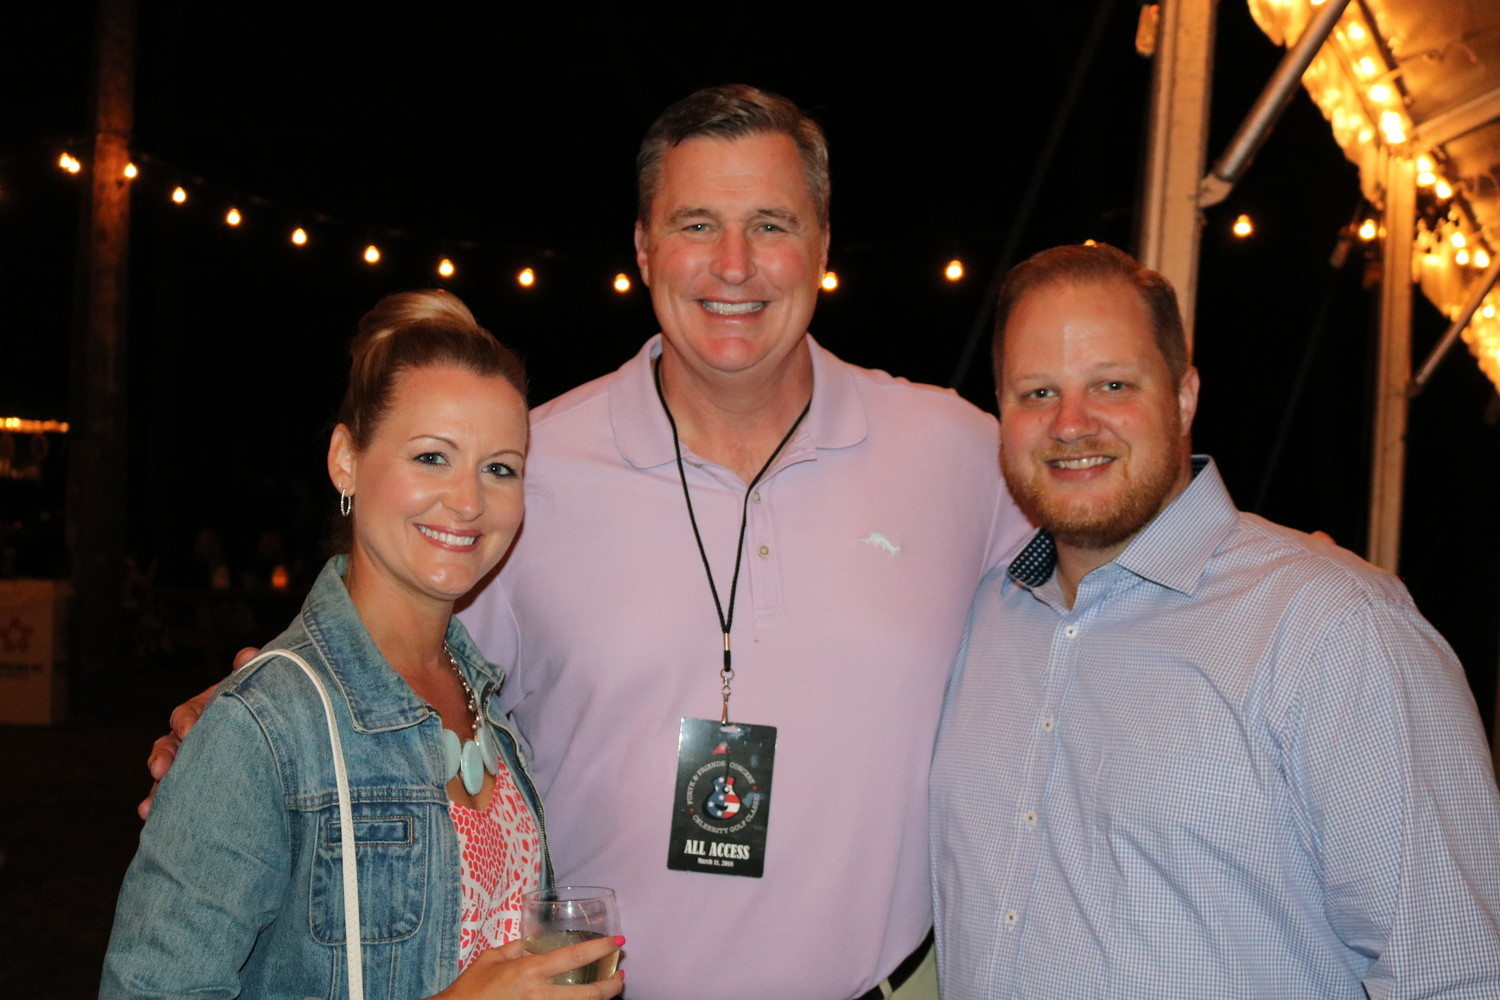 Janelle and Josh Zenner with Jaguars coach Doug Marrone before the concert